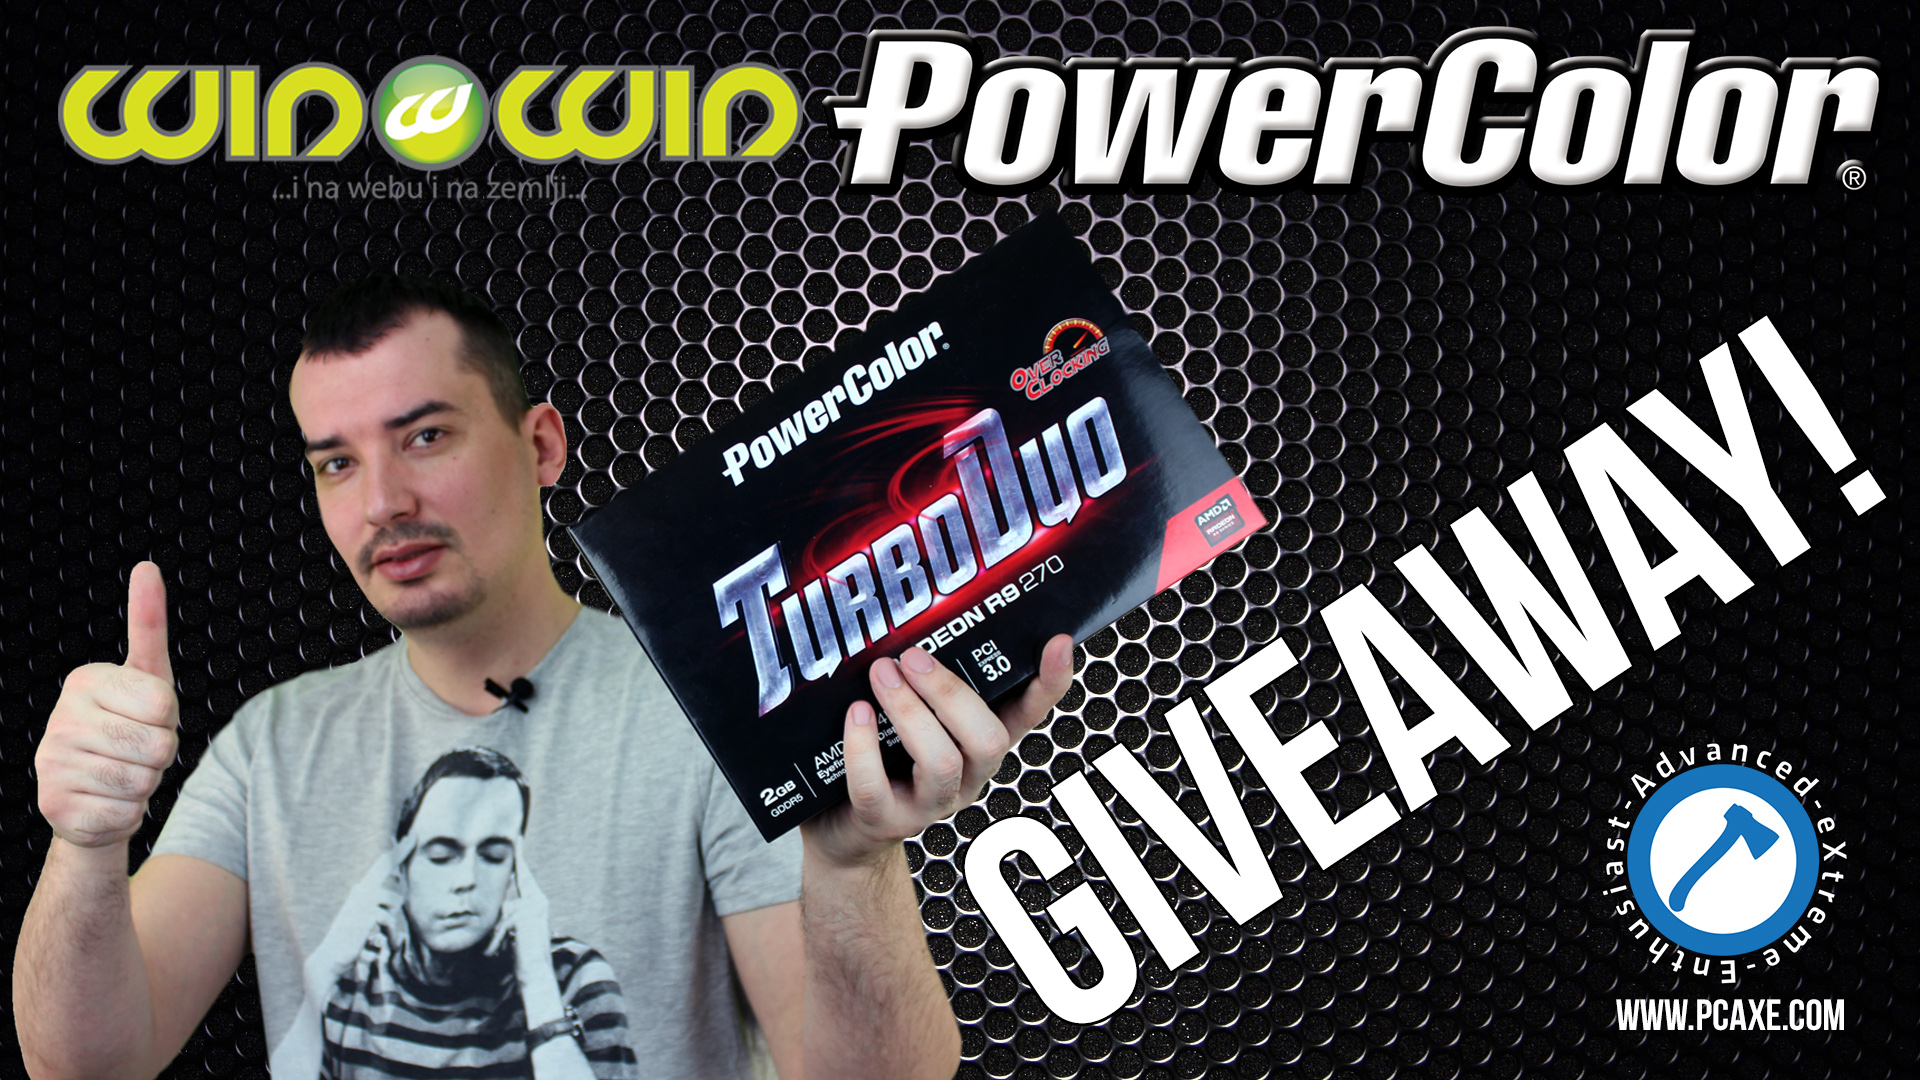 Powercolor giveaway najava